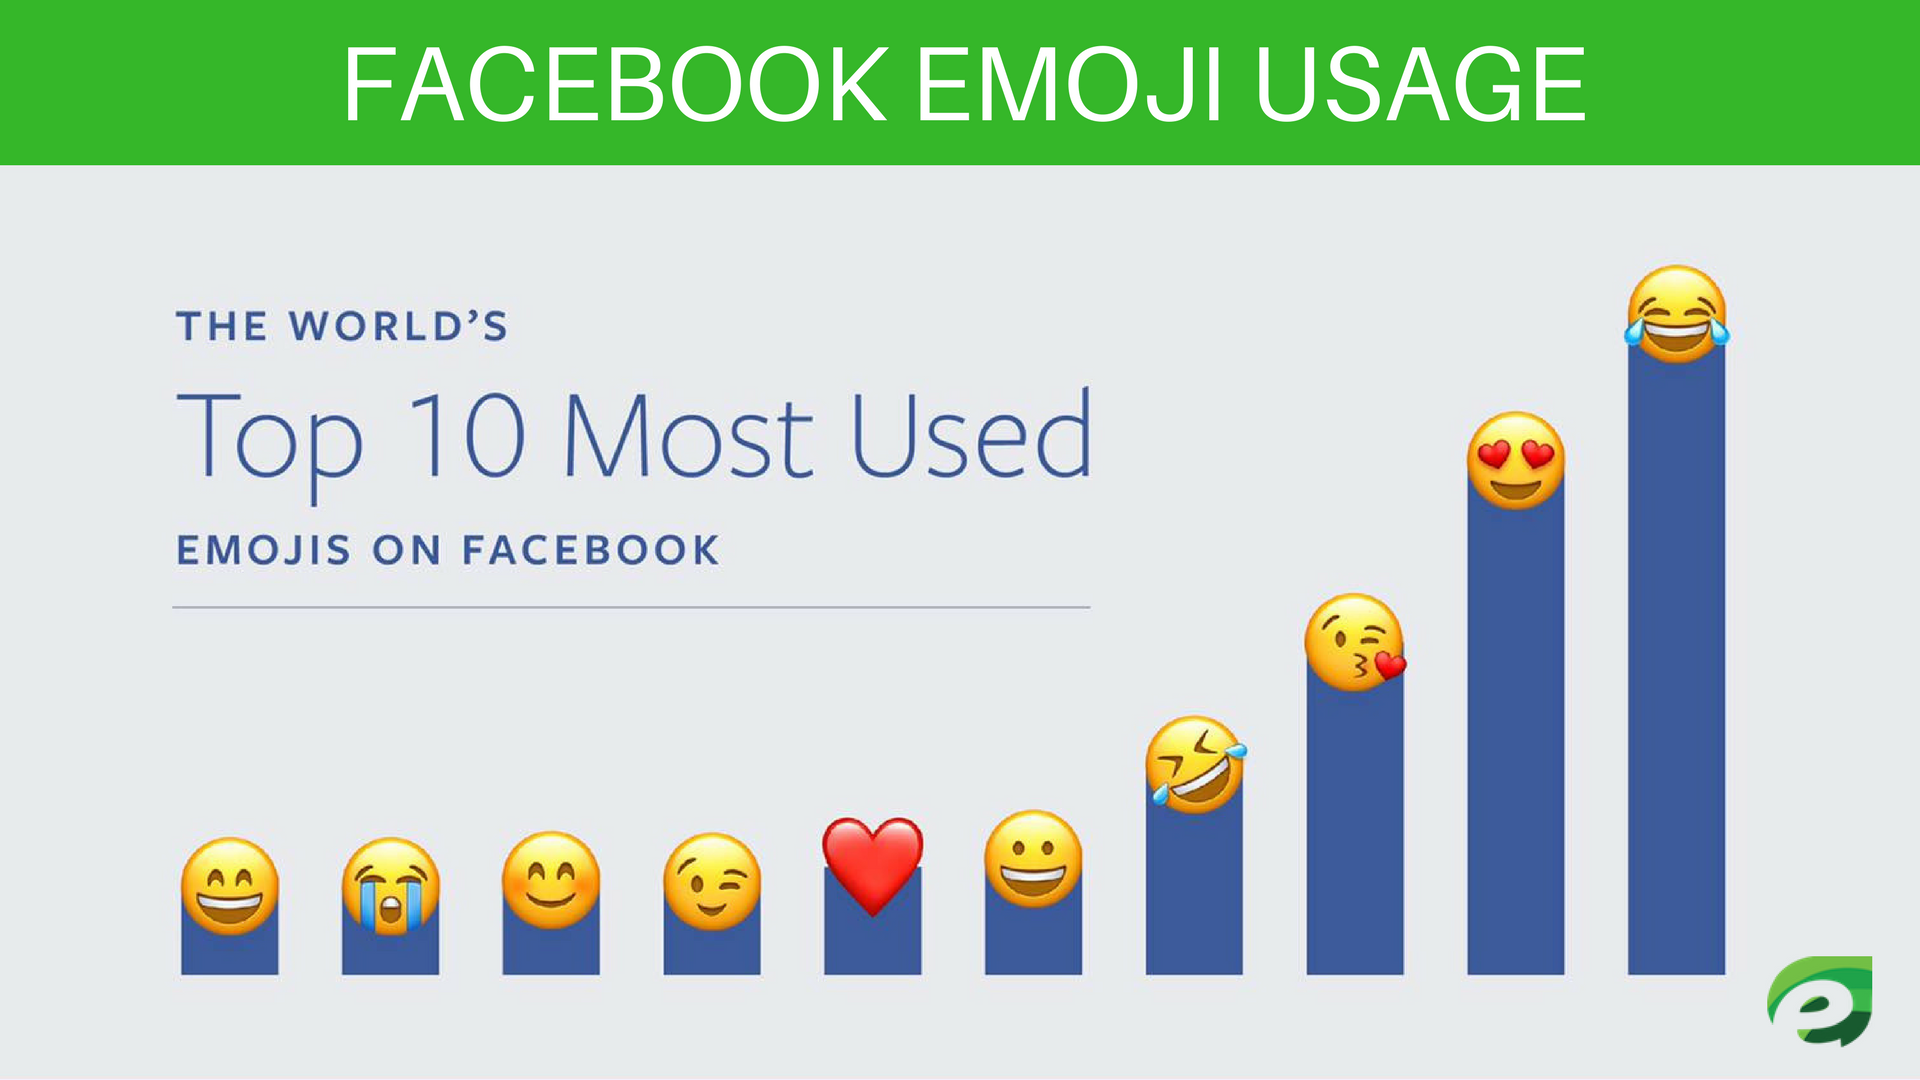 Emoji - How Facebook Works